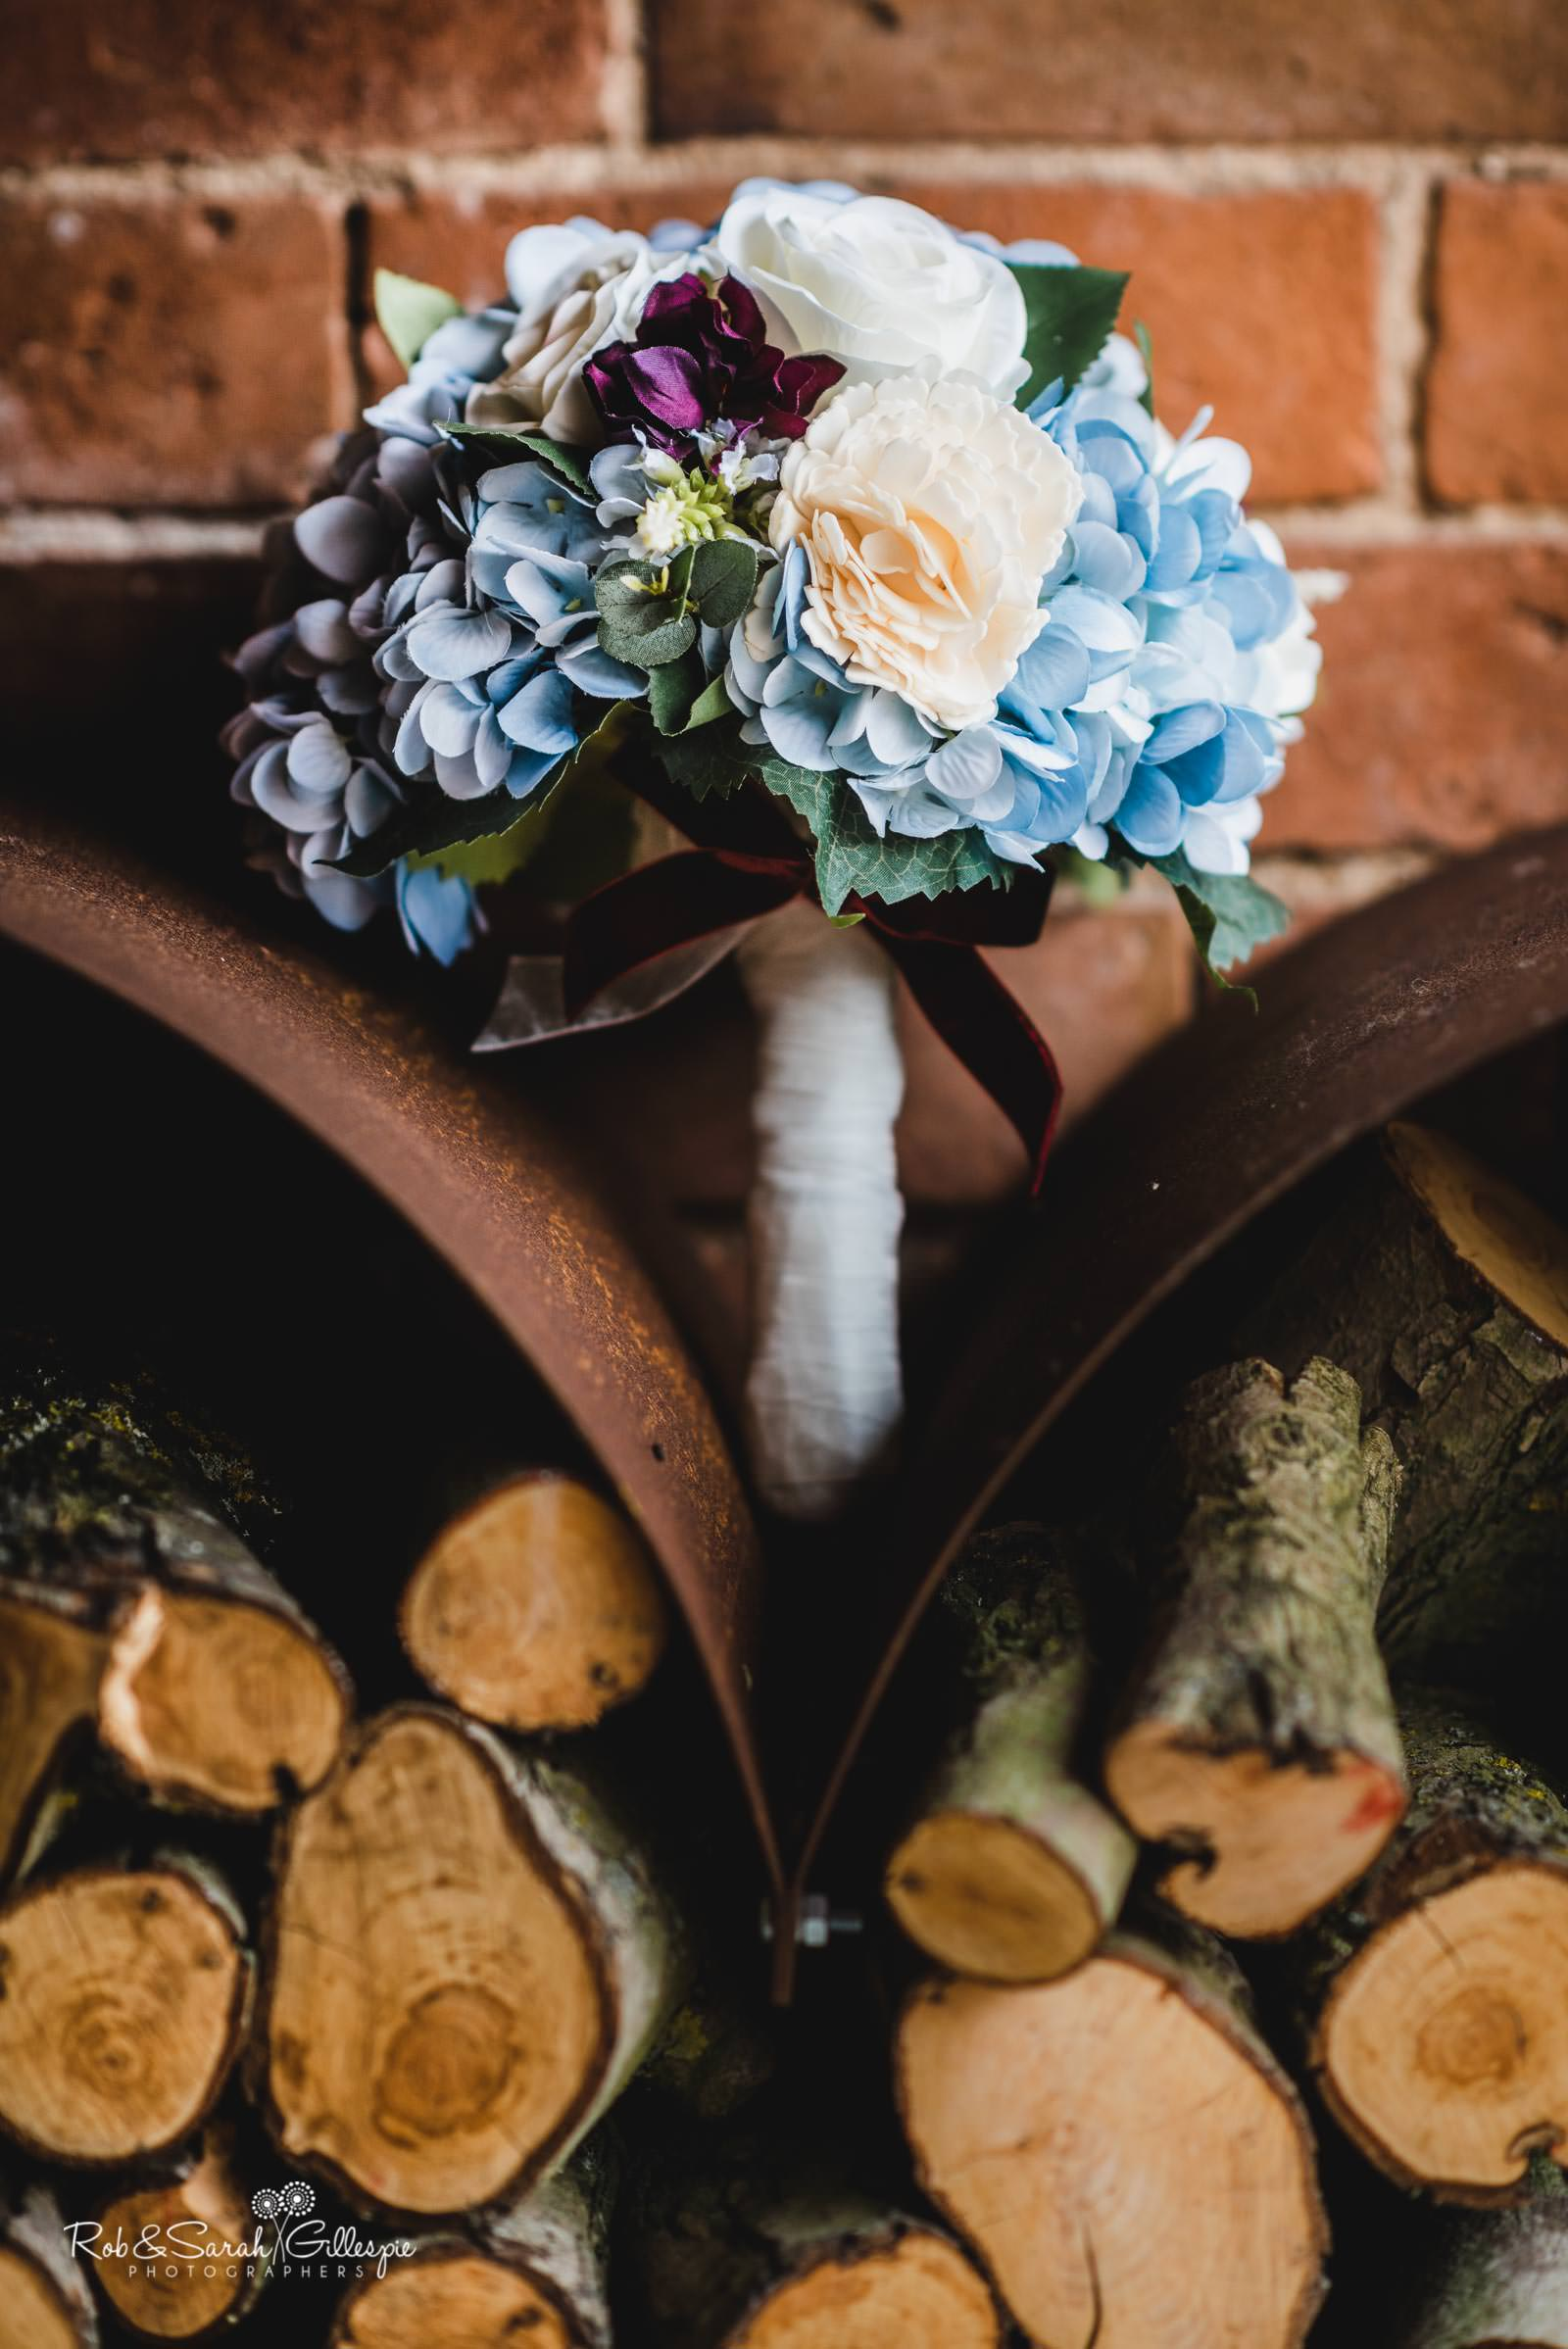 Brides bouquet at Swallows Nest Barn